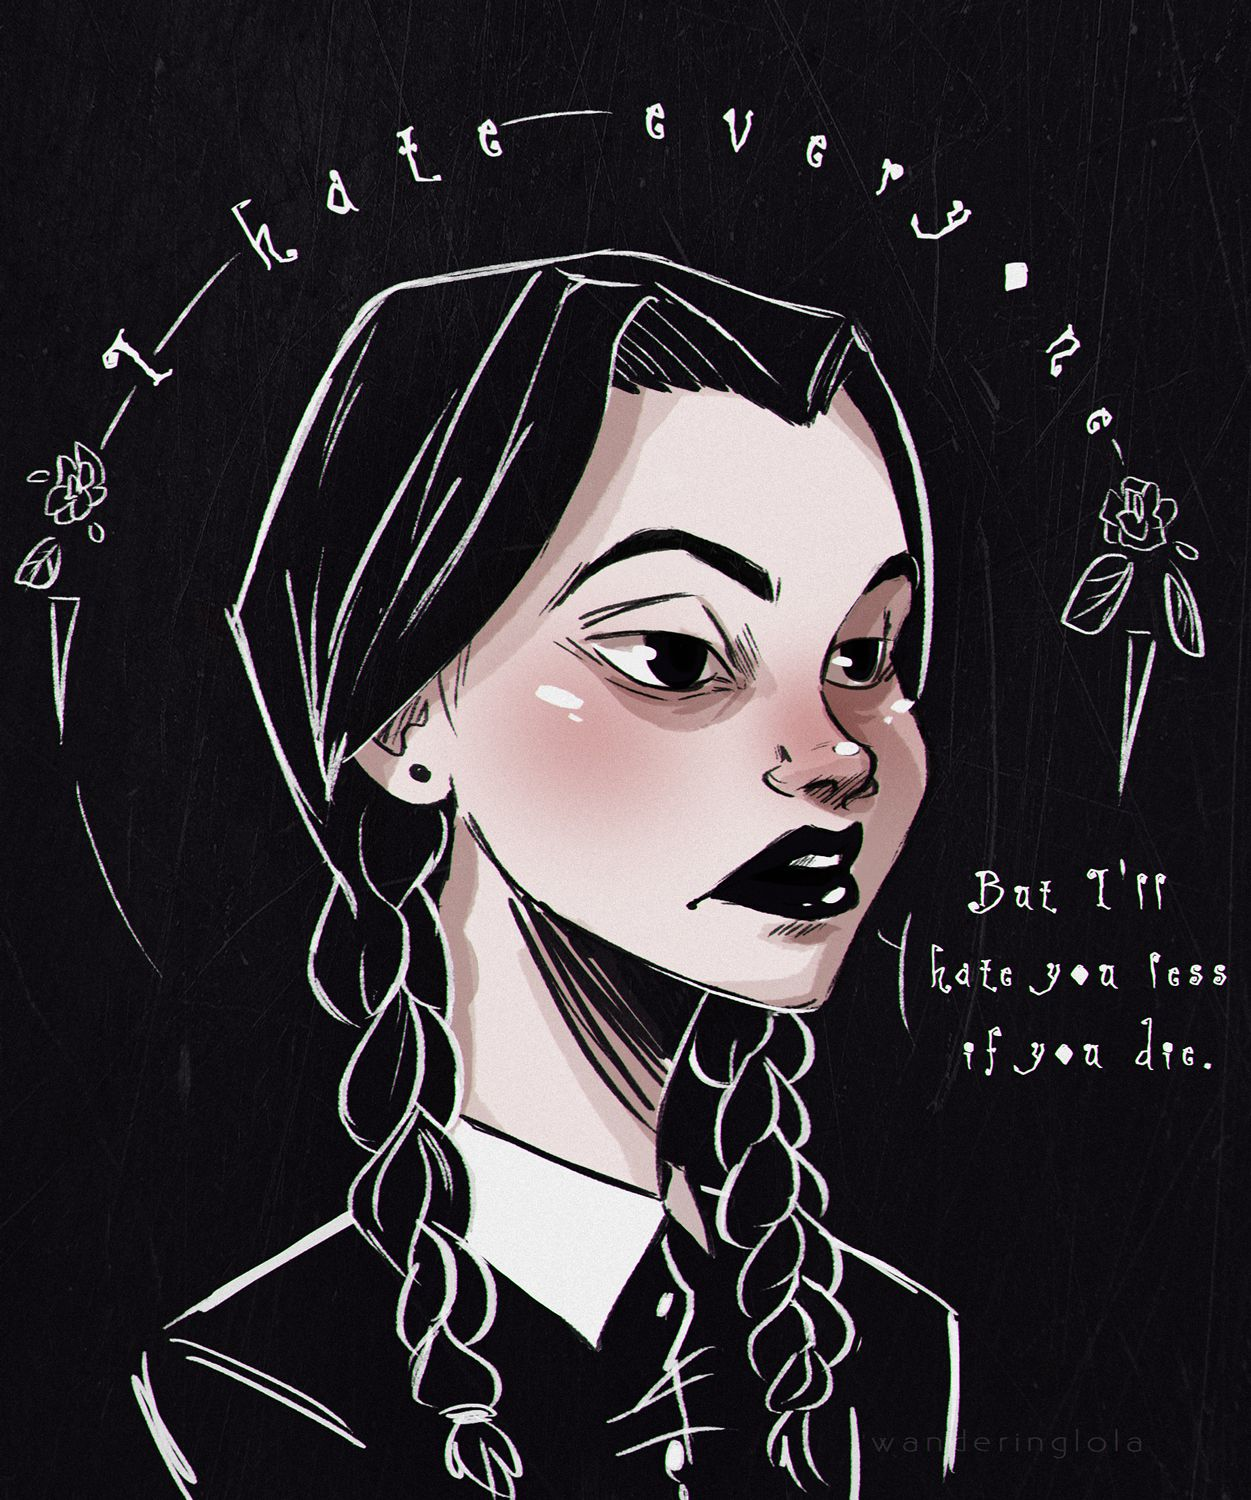 Uncle fester the addams family pinterest - Explore The Addams Family Adams Family And More